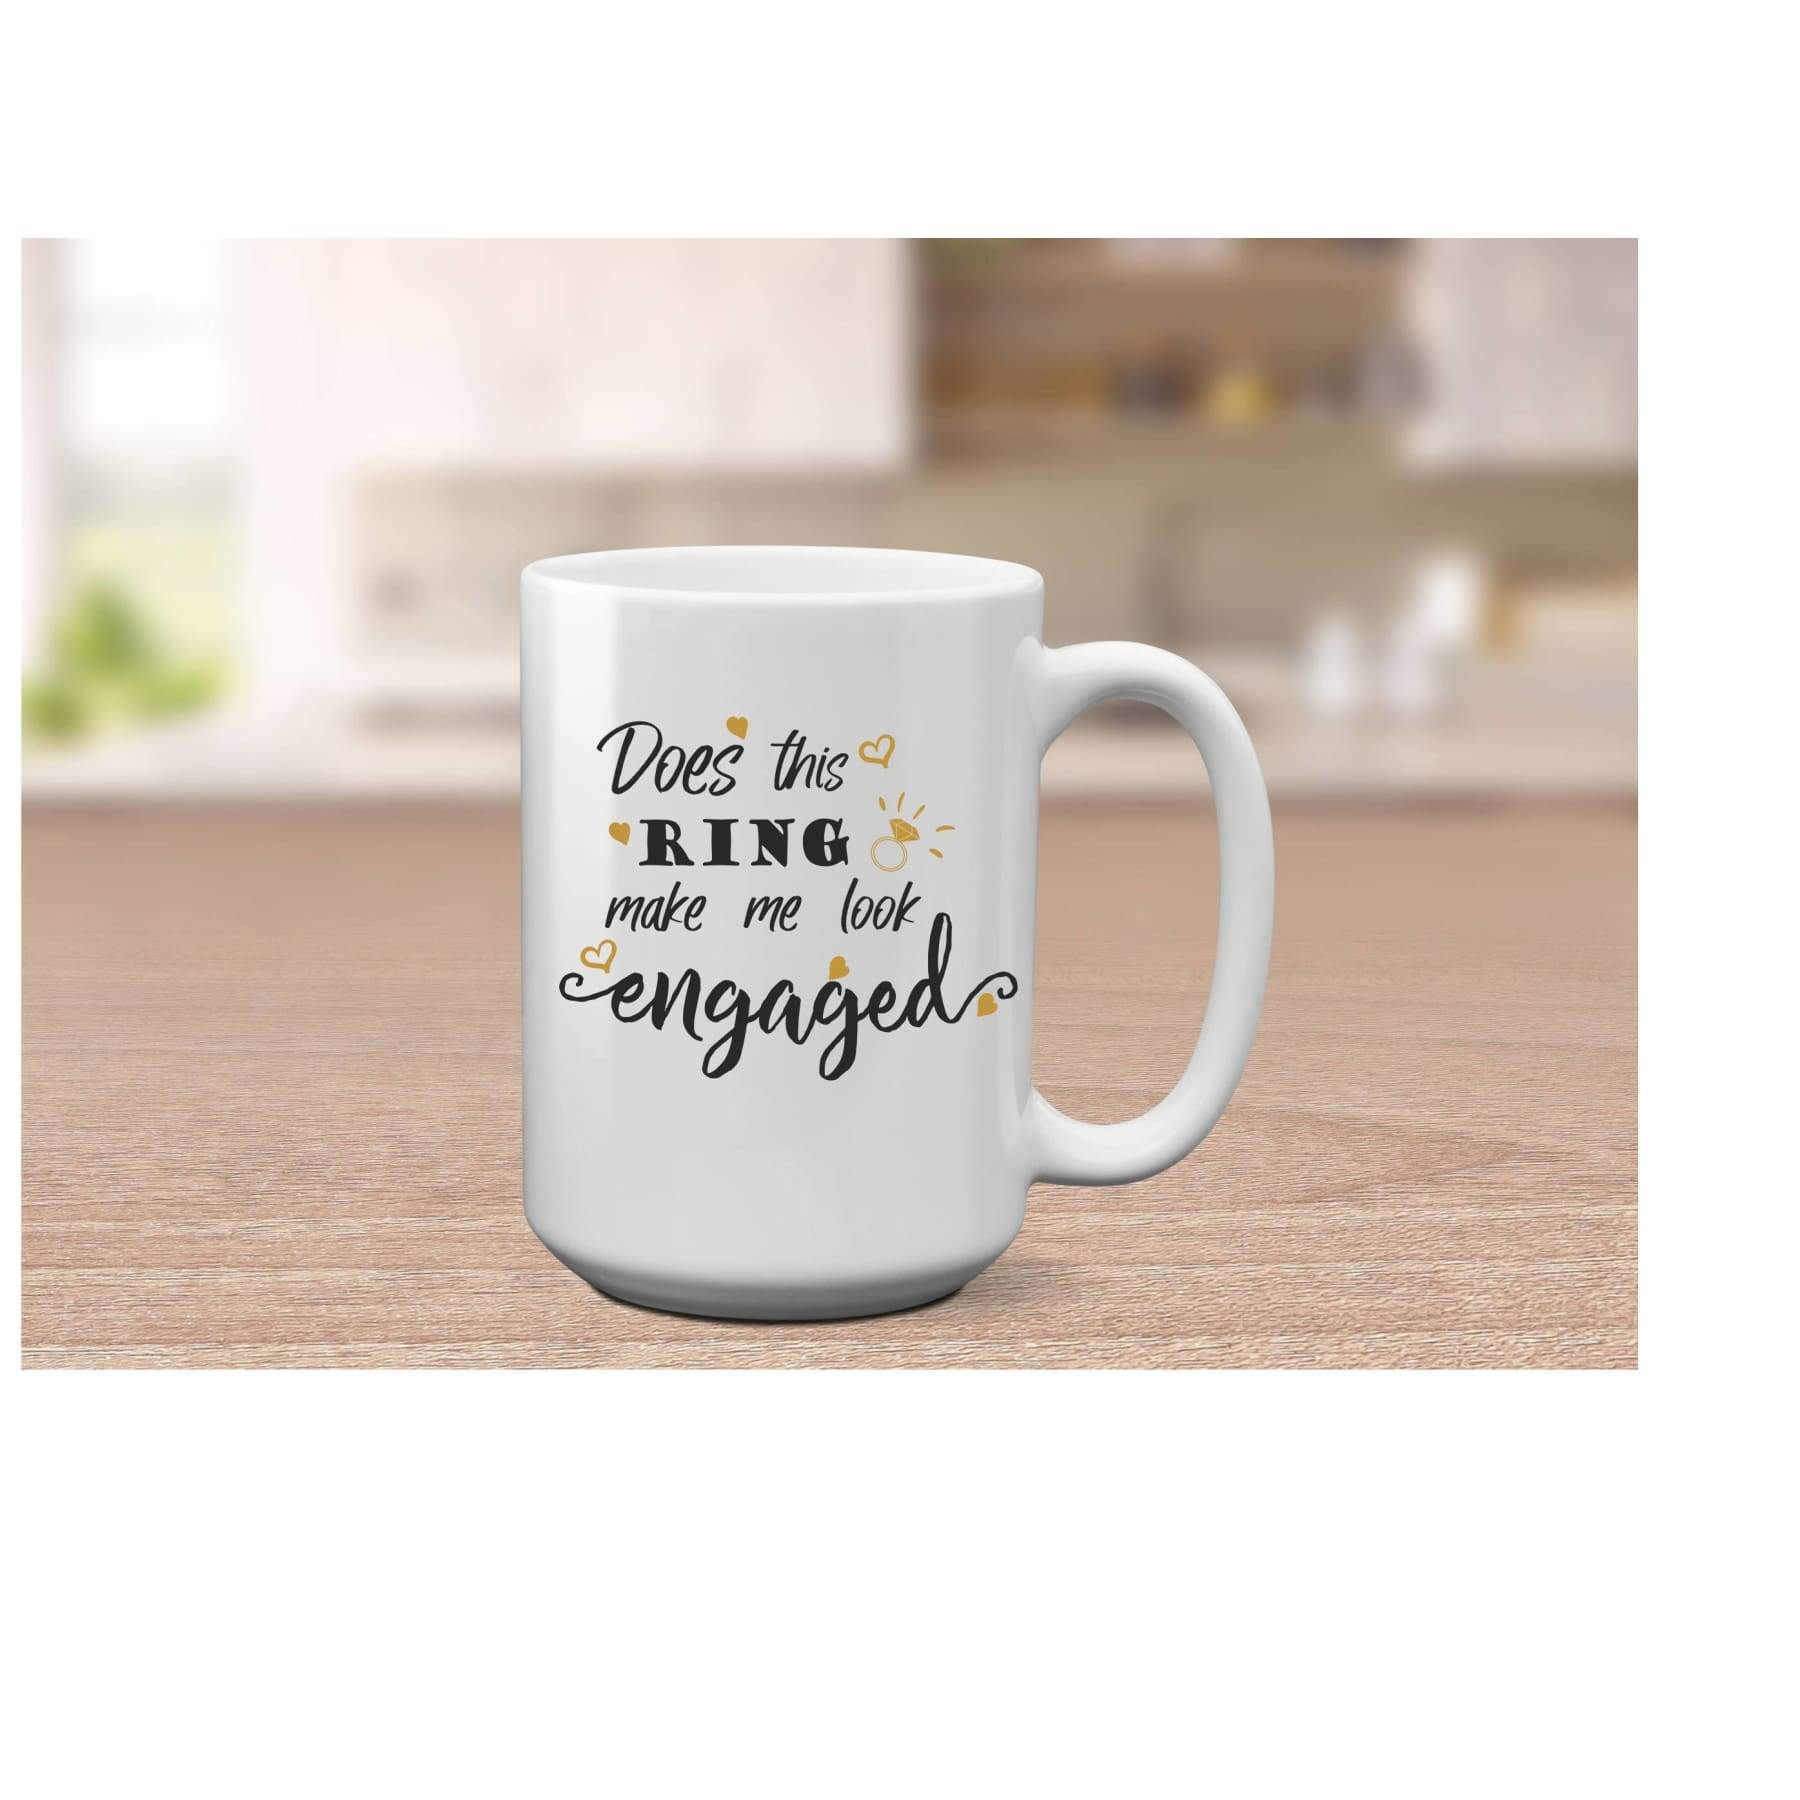 Does This Ring Make Me Look Engaged Coffee Mug.